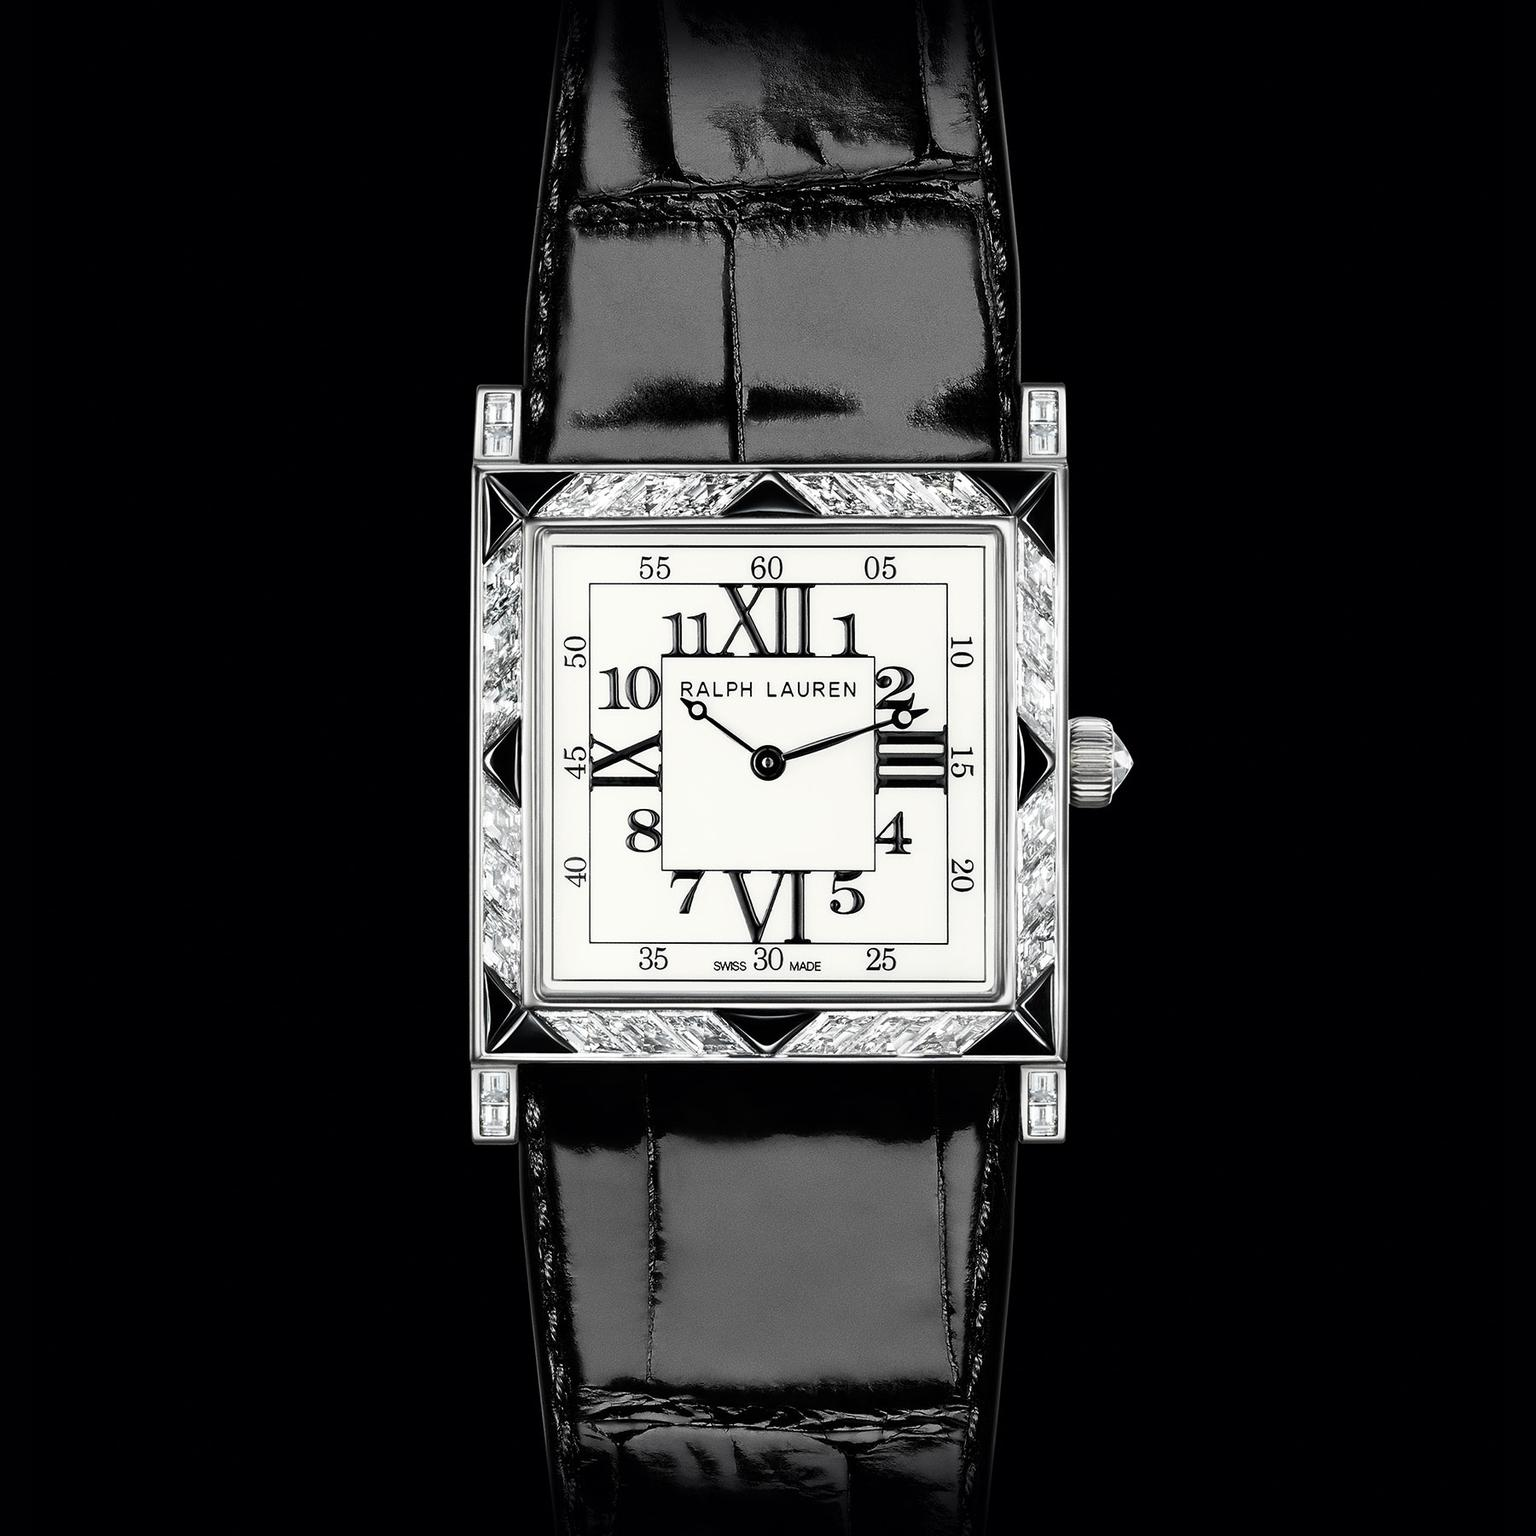 Ralph Lauren 867 Deco Diamond watch